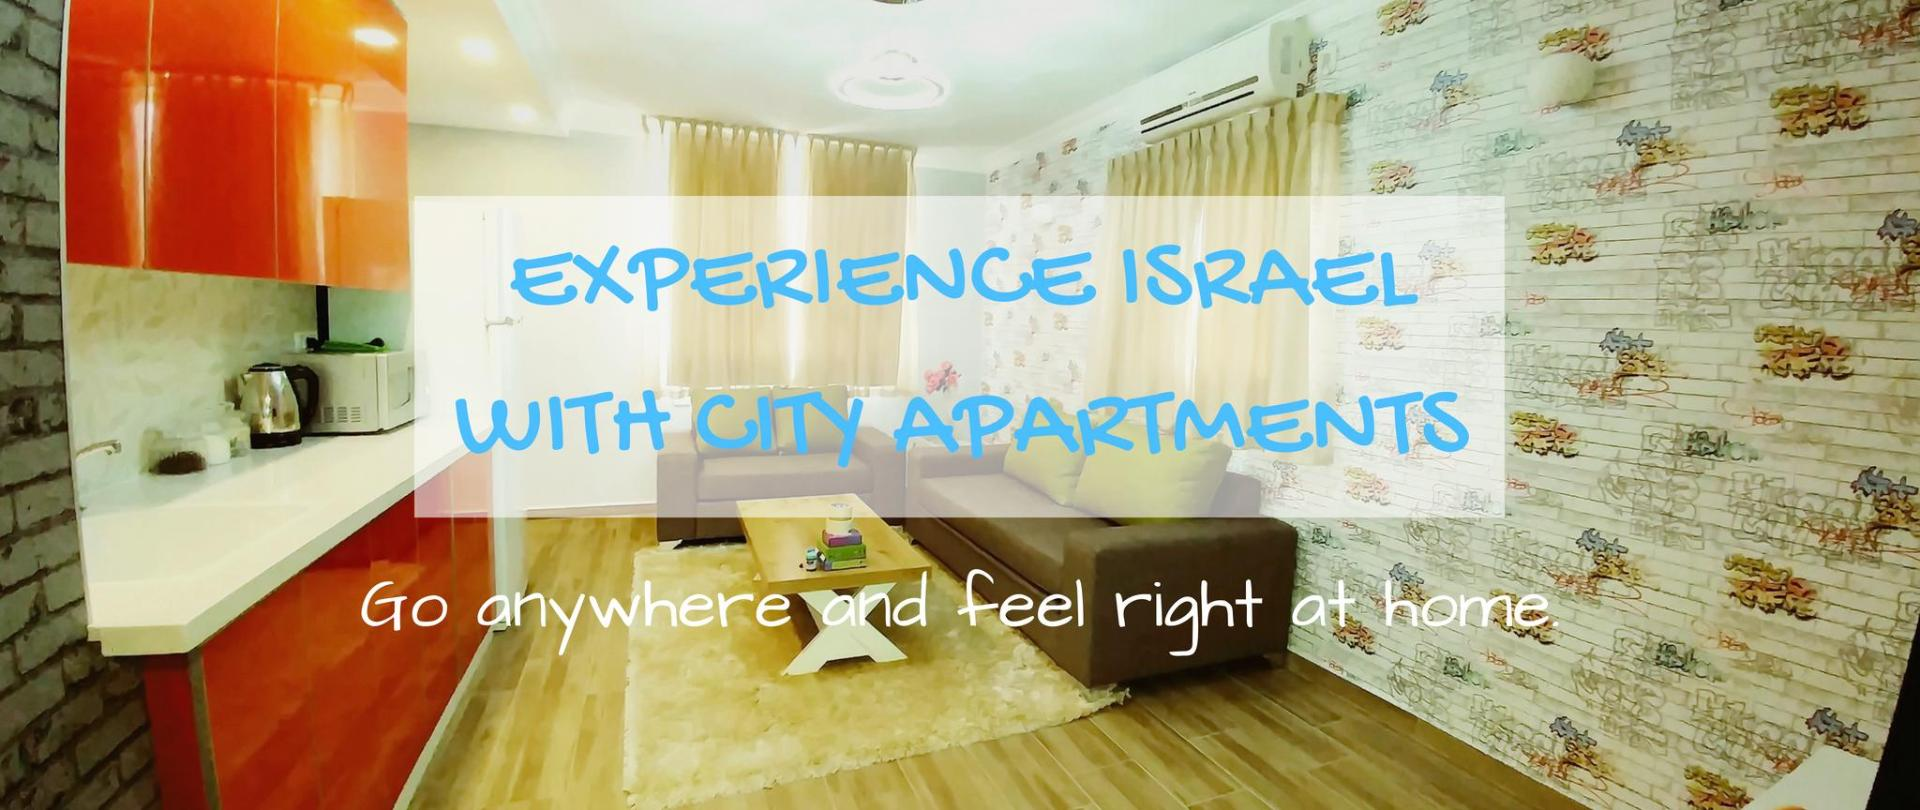 Experience Israelwith Fattal Hotels3.png